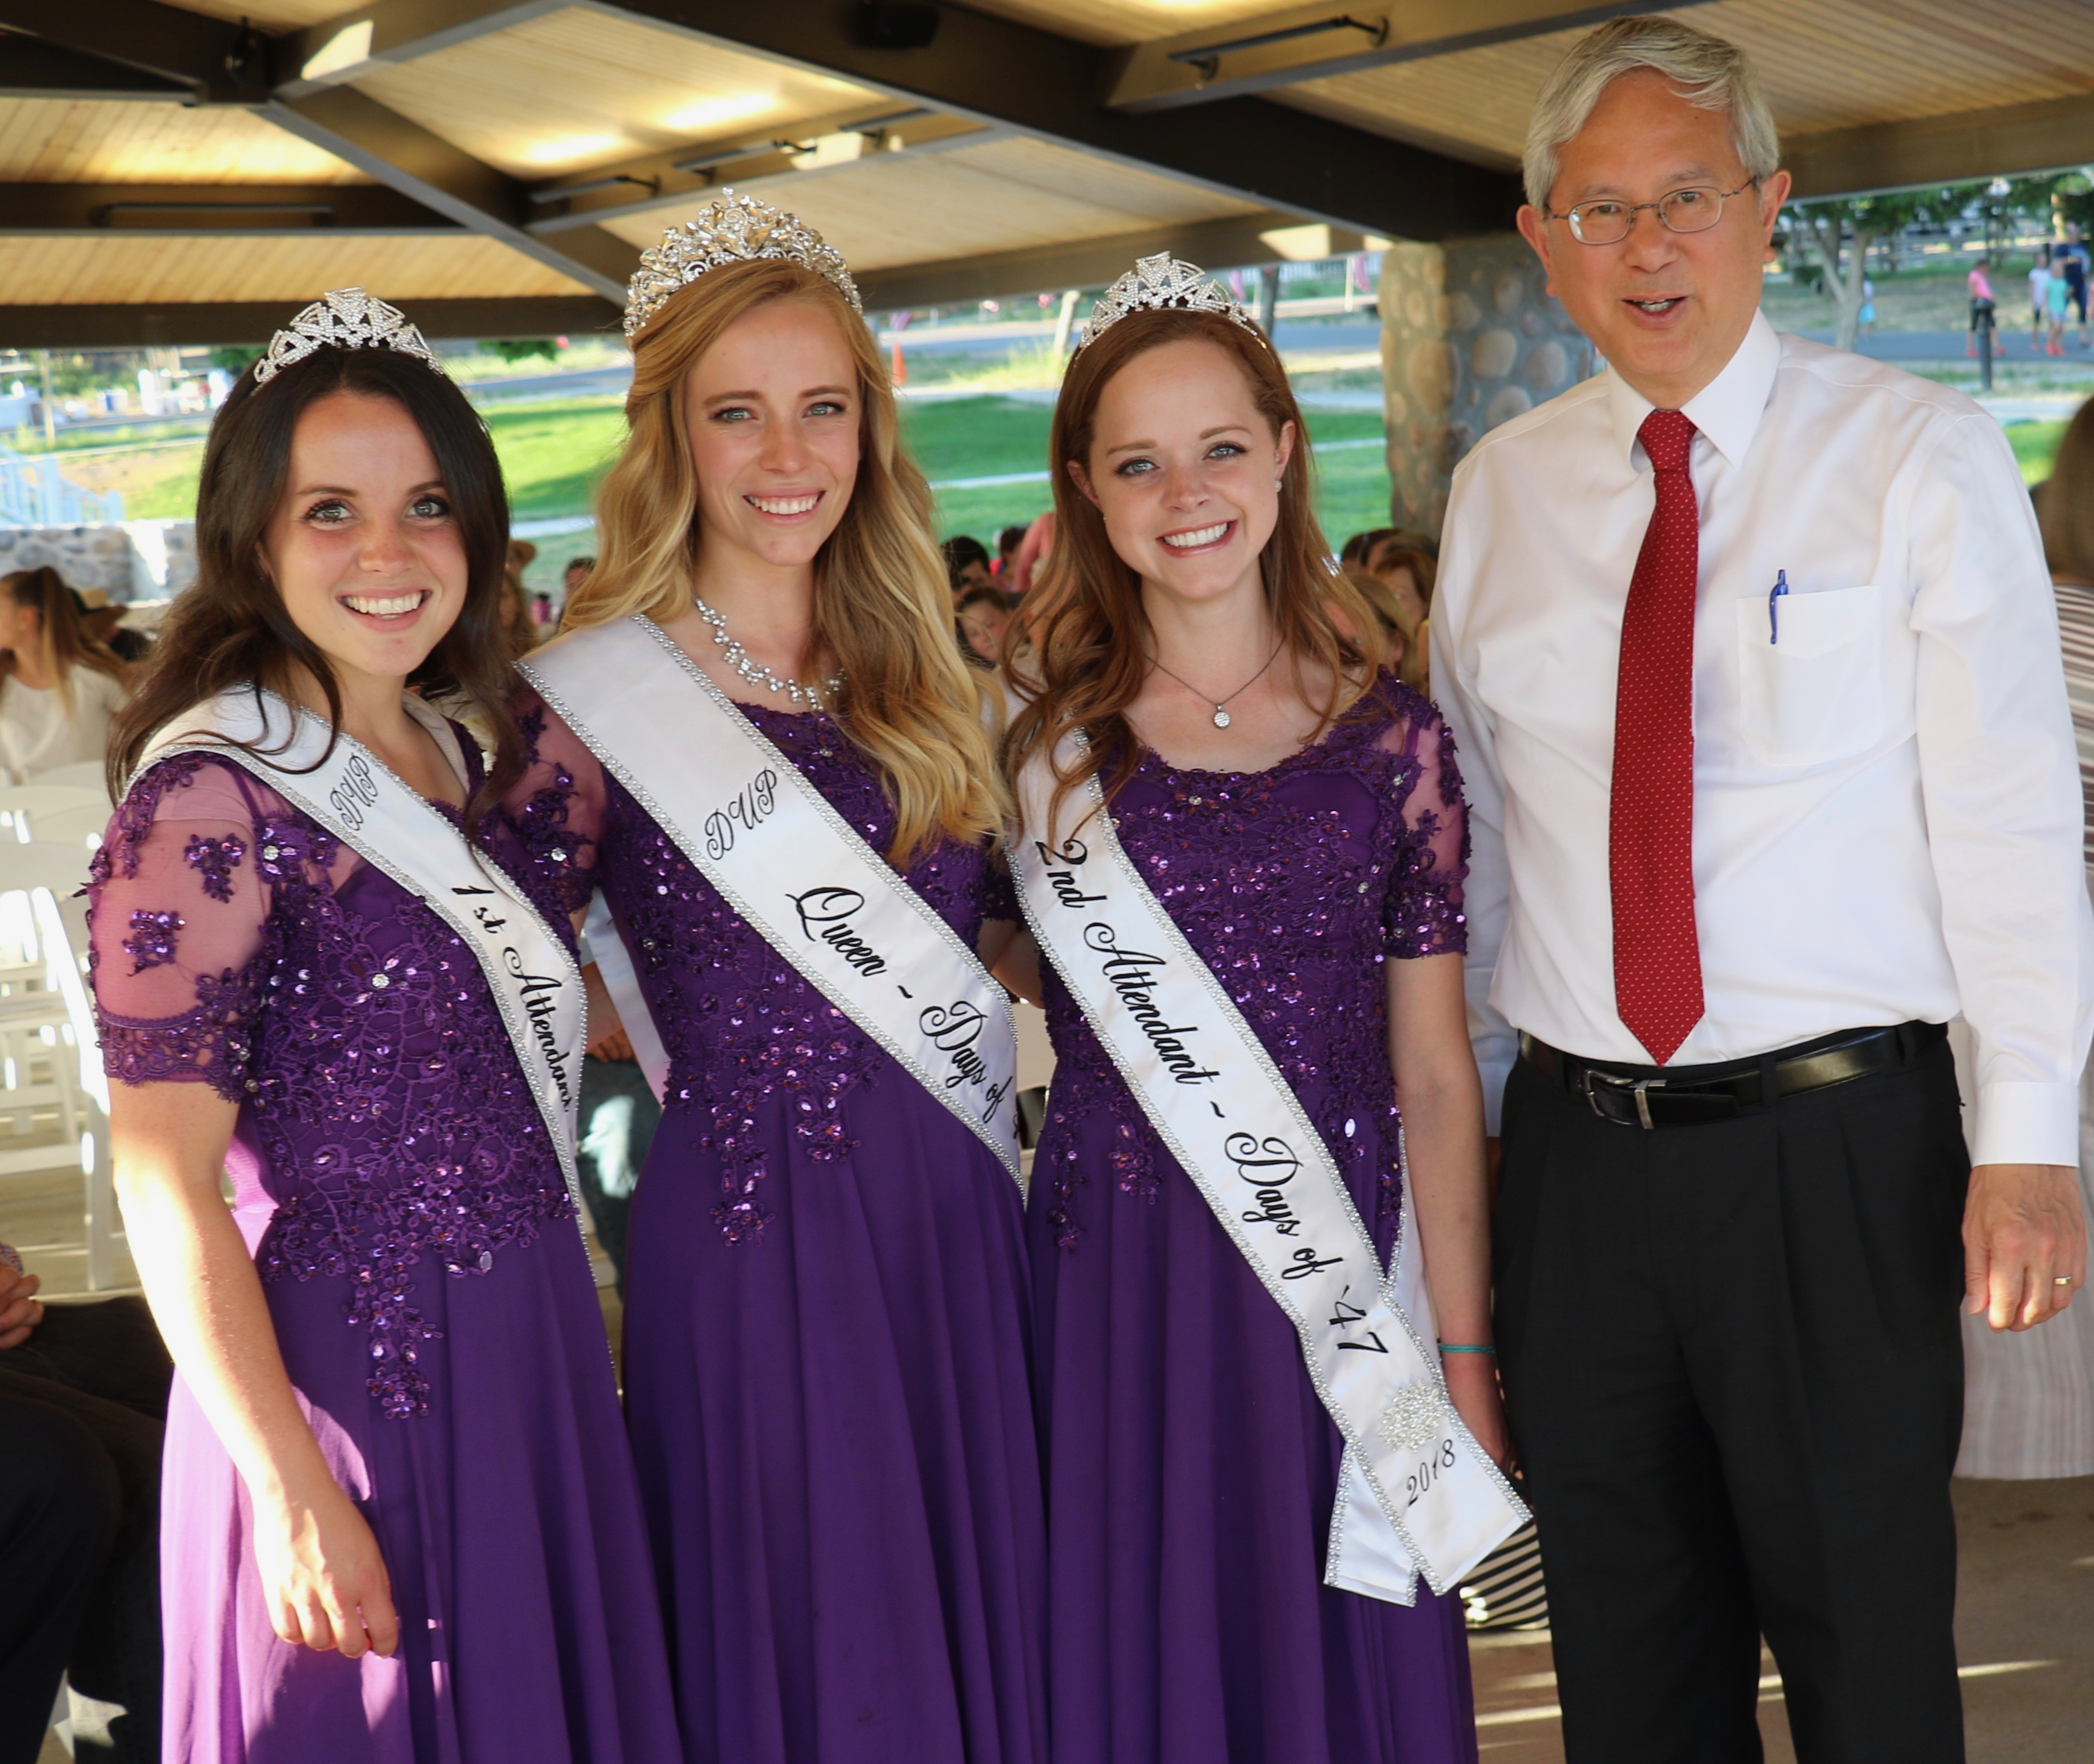 Elder Gerrit W. Gong was joined on the program of the July 16, 2018, pioneer-themed devotional by the 2018 Days of '47 Royalty. From left, Heidi Farley, first attendant; Lauren Bell, queen; and Rachel Roy, second attendant.